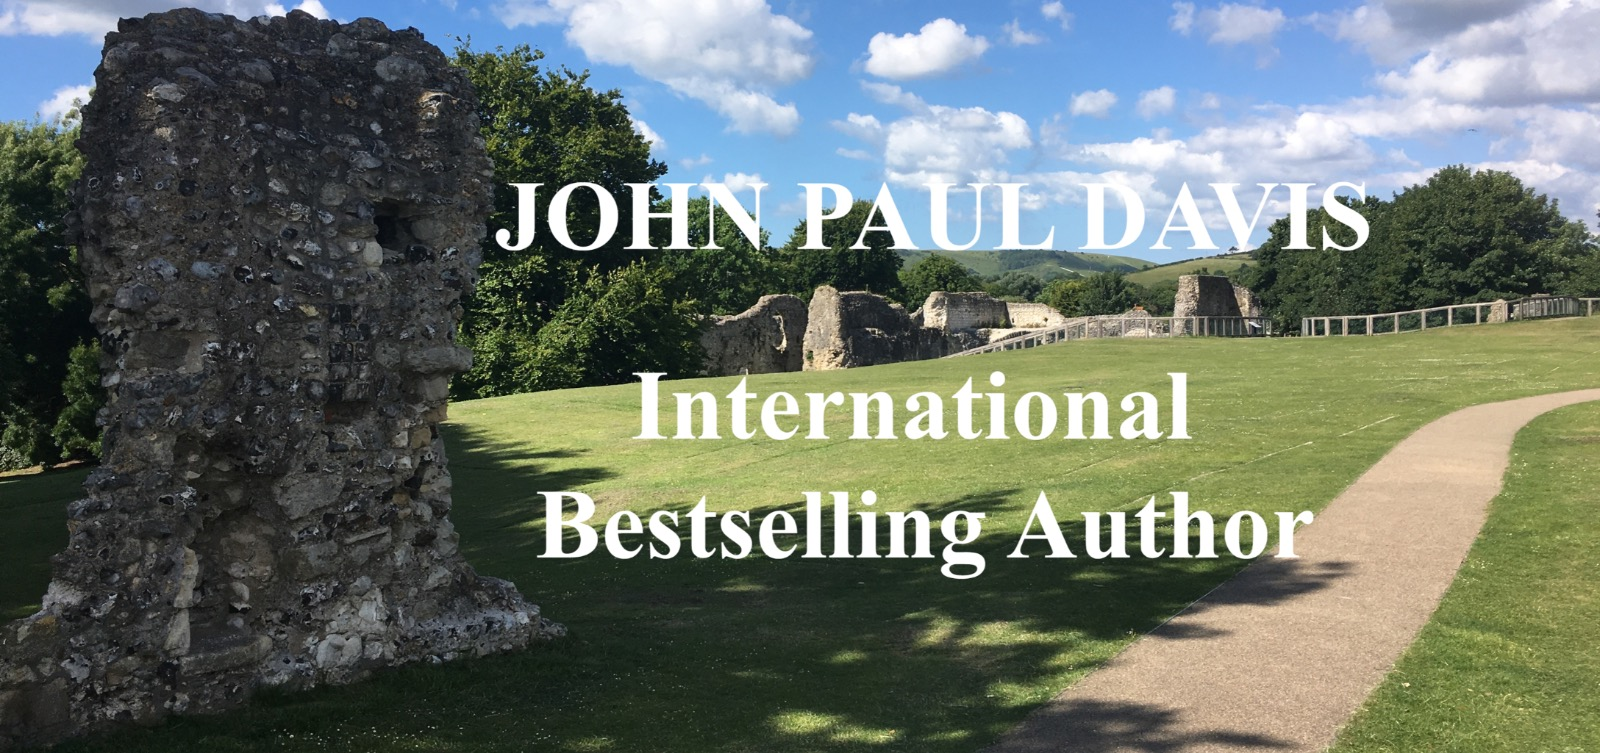 John Paul Davis - International Bestselling Author